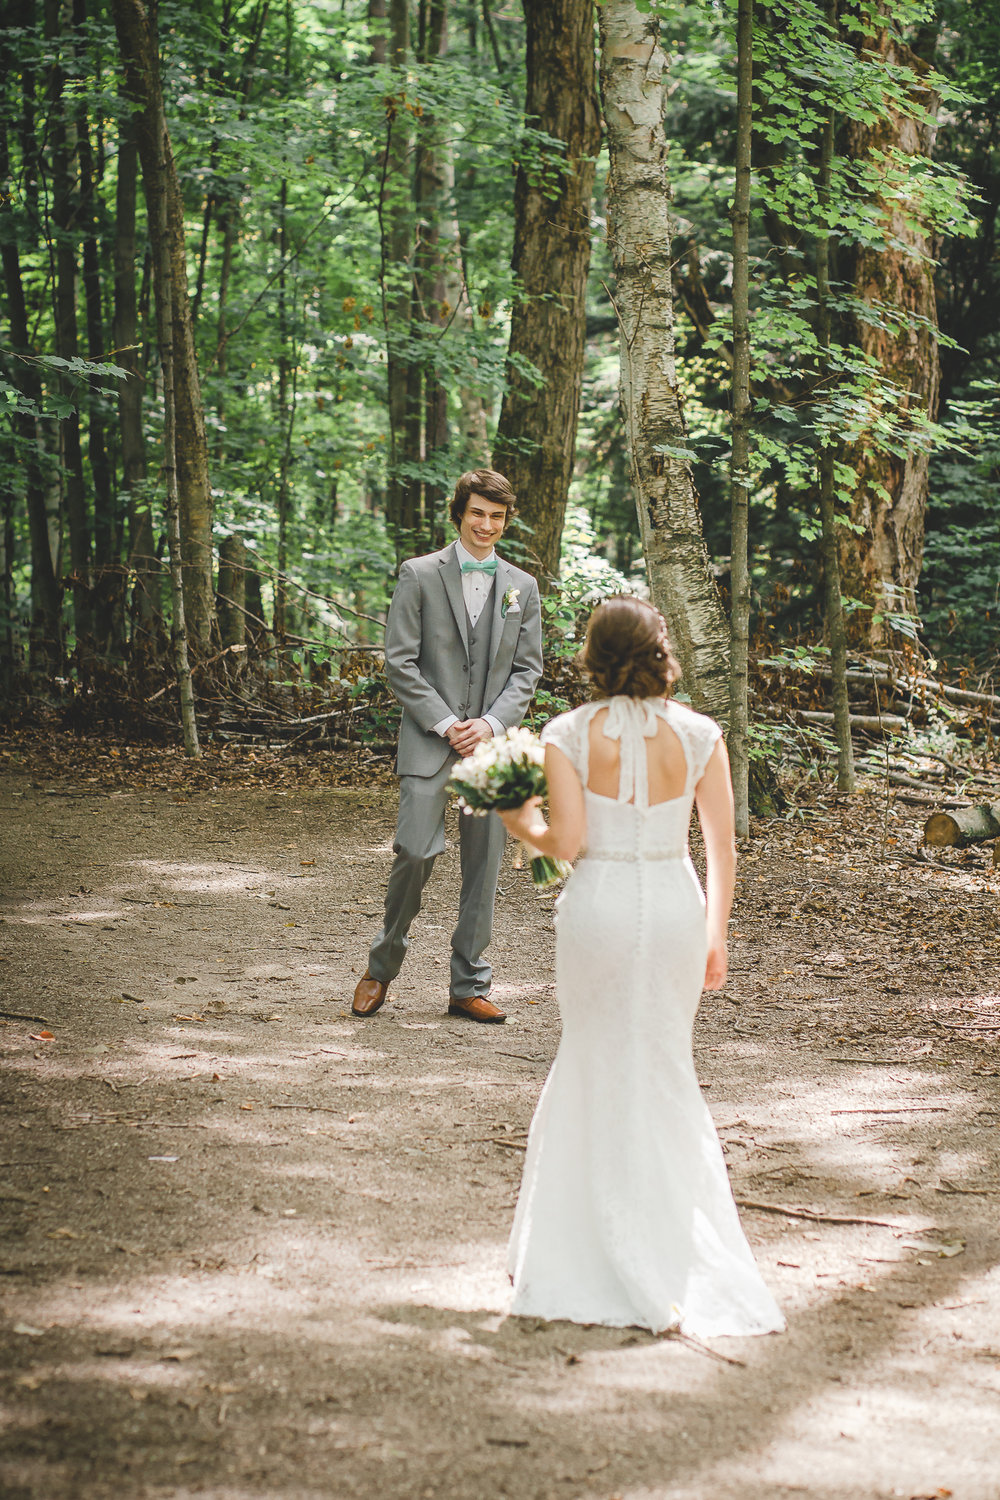 First Look- Amy D Photography- Wedding Photography- Barrie Wedding Photographer - Barrie Wedding Photography- Wedding First Look- First Look Forest-16.jpg